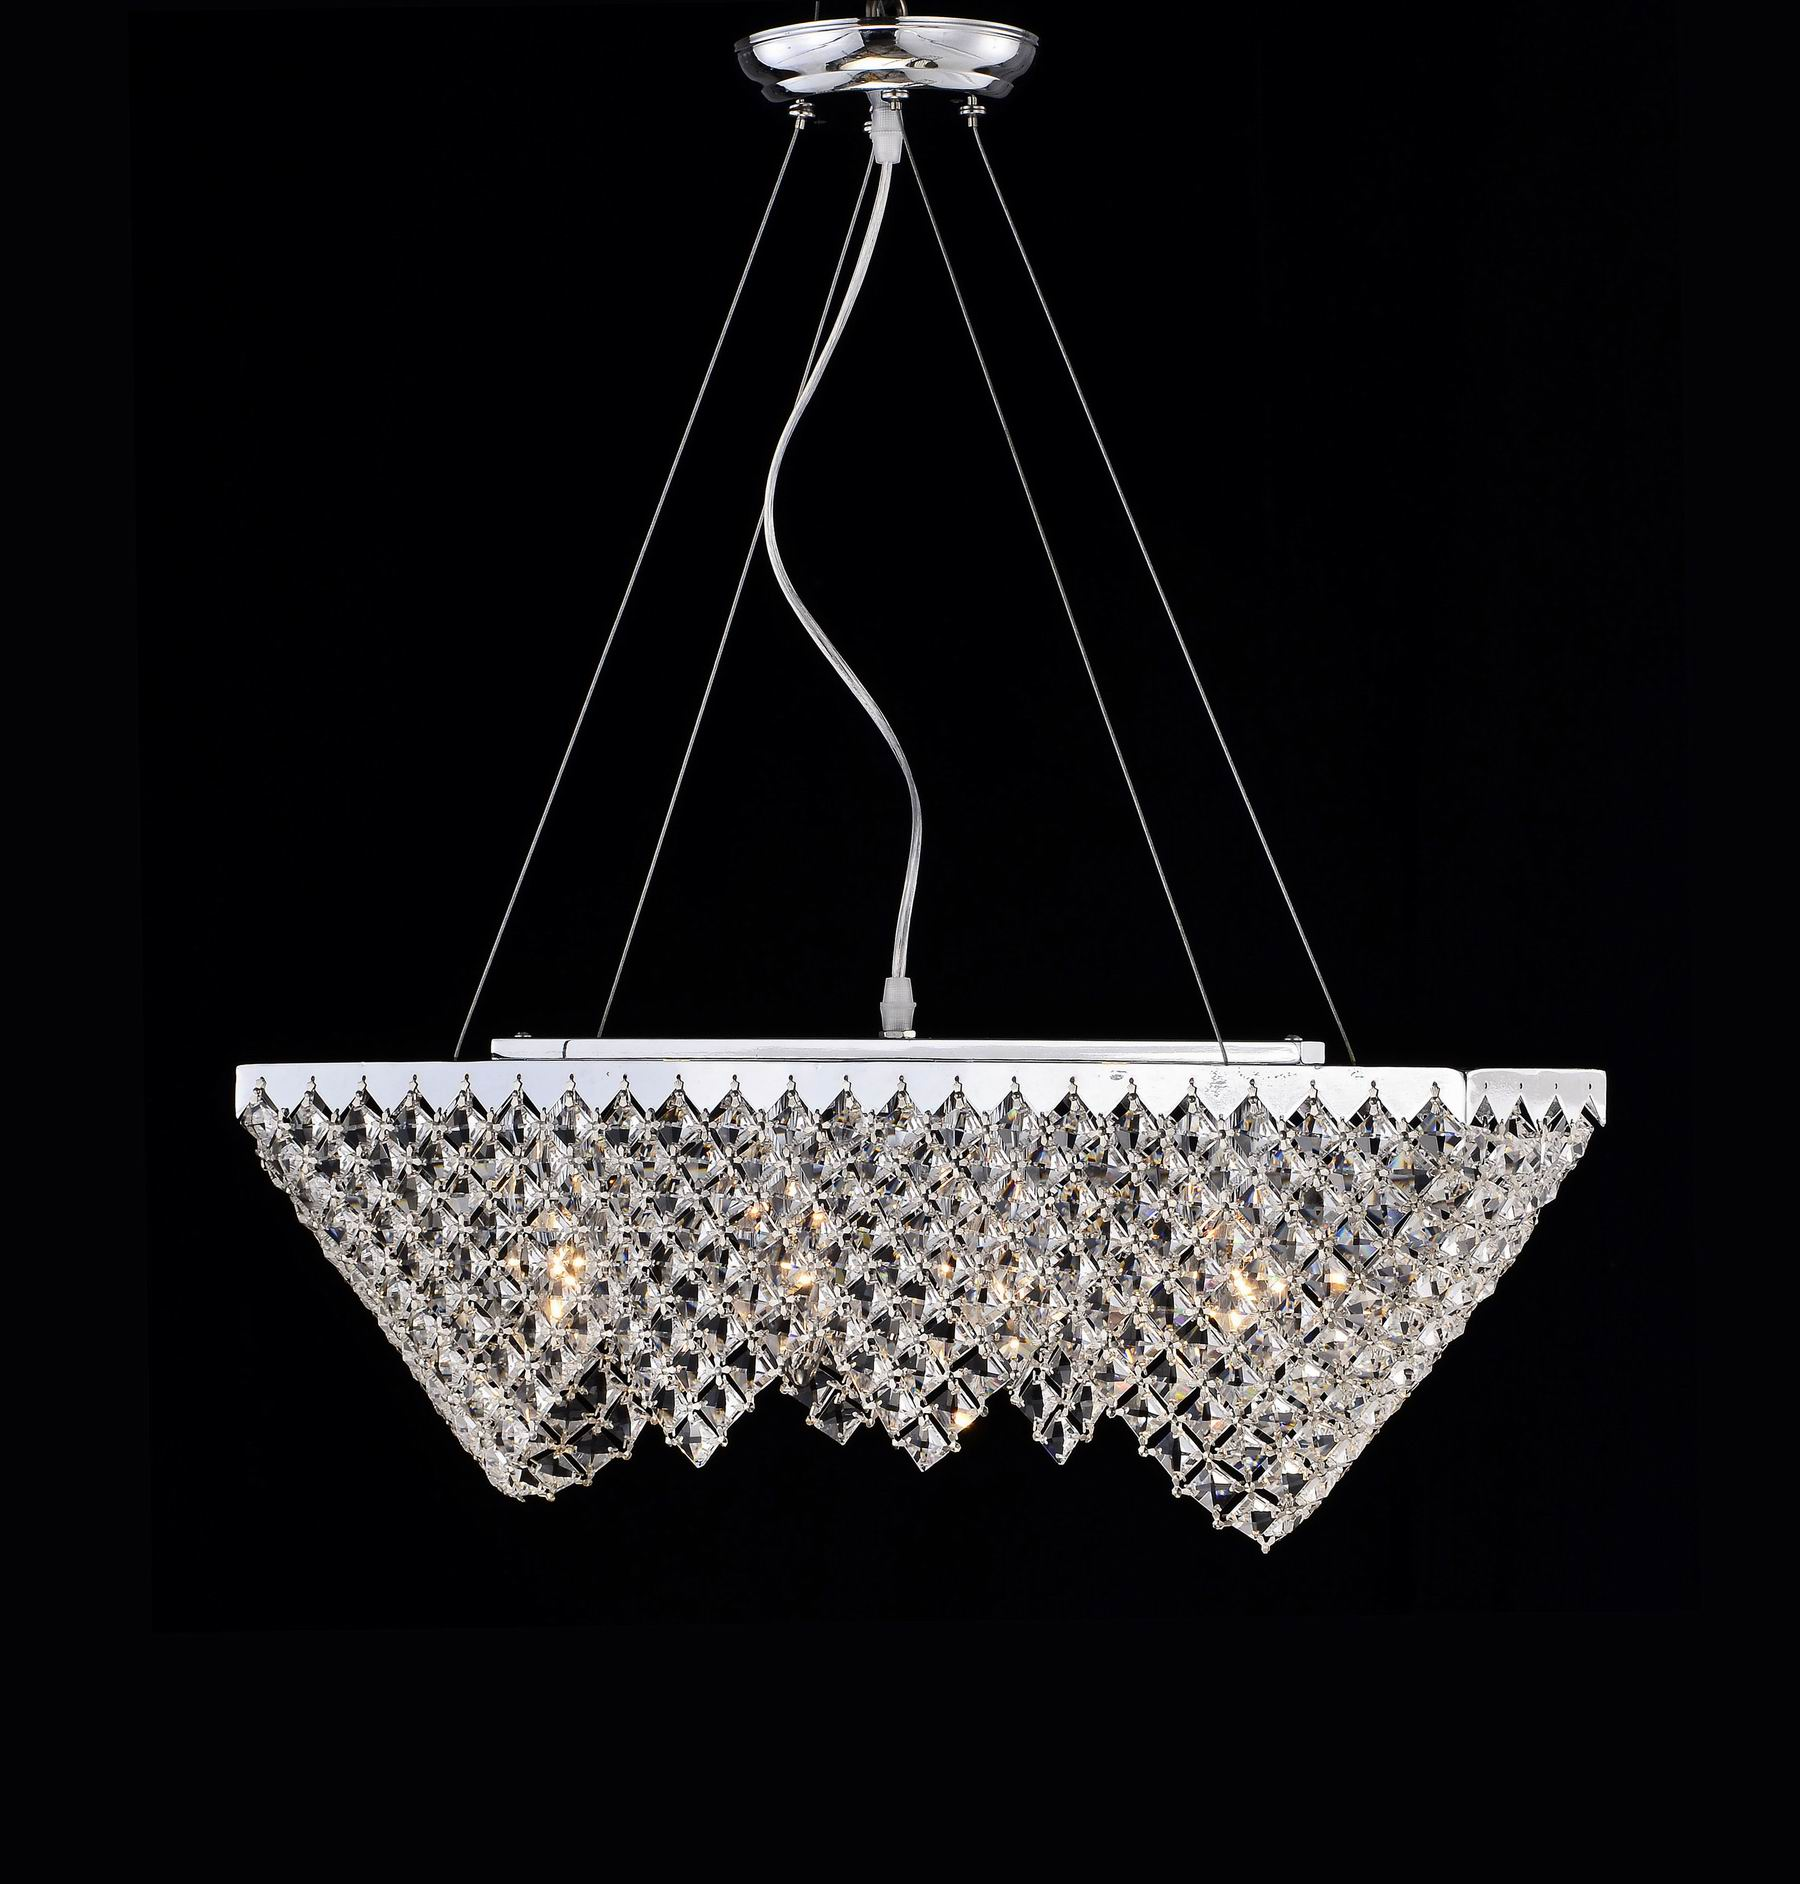 'Pt Loma' Contemporary Chrome and Crystal Chandelier